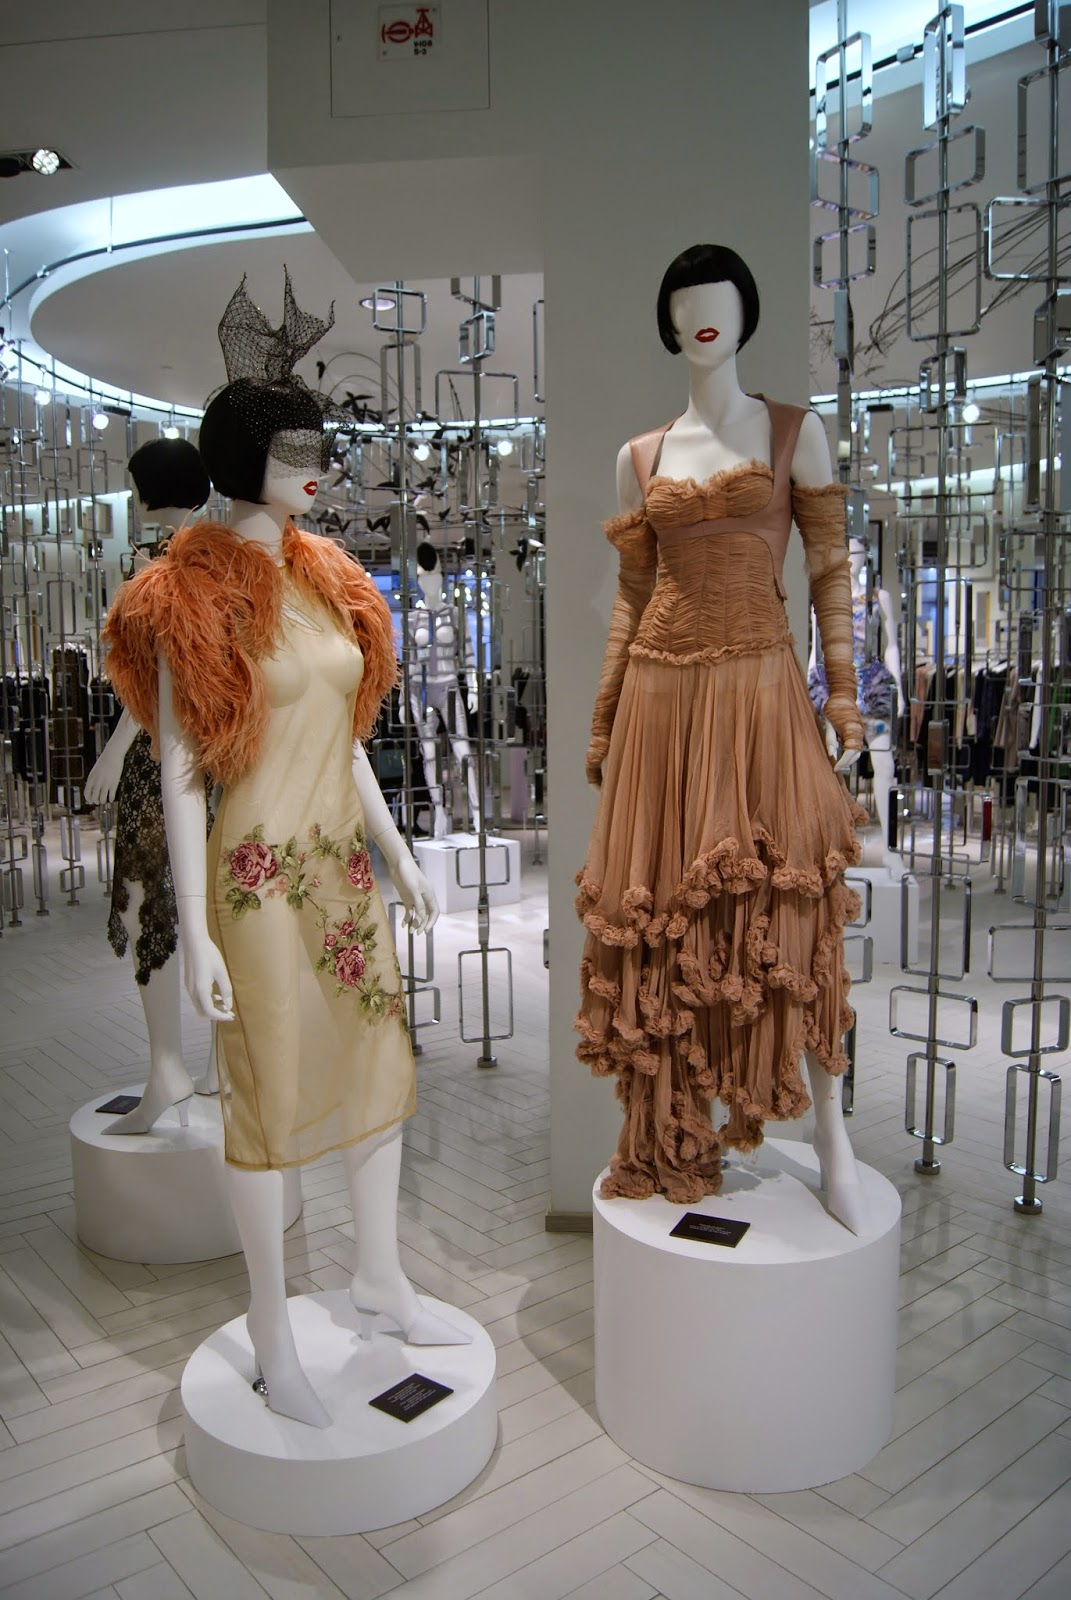 Fashion Blows Exhibit at Hudson's Bay in Toronto, Isabella, Daupne Guinness, Style, Culture, foundation, alexander mcqueen, philip treacy, suicide,the purple scarf, melanie.ps, ontario, canada, the room, dress, bolero, fall, winter, spring, summer, designer